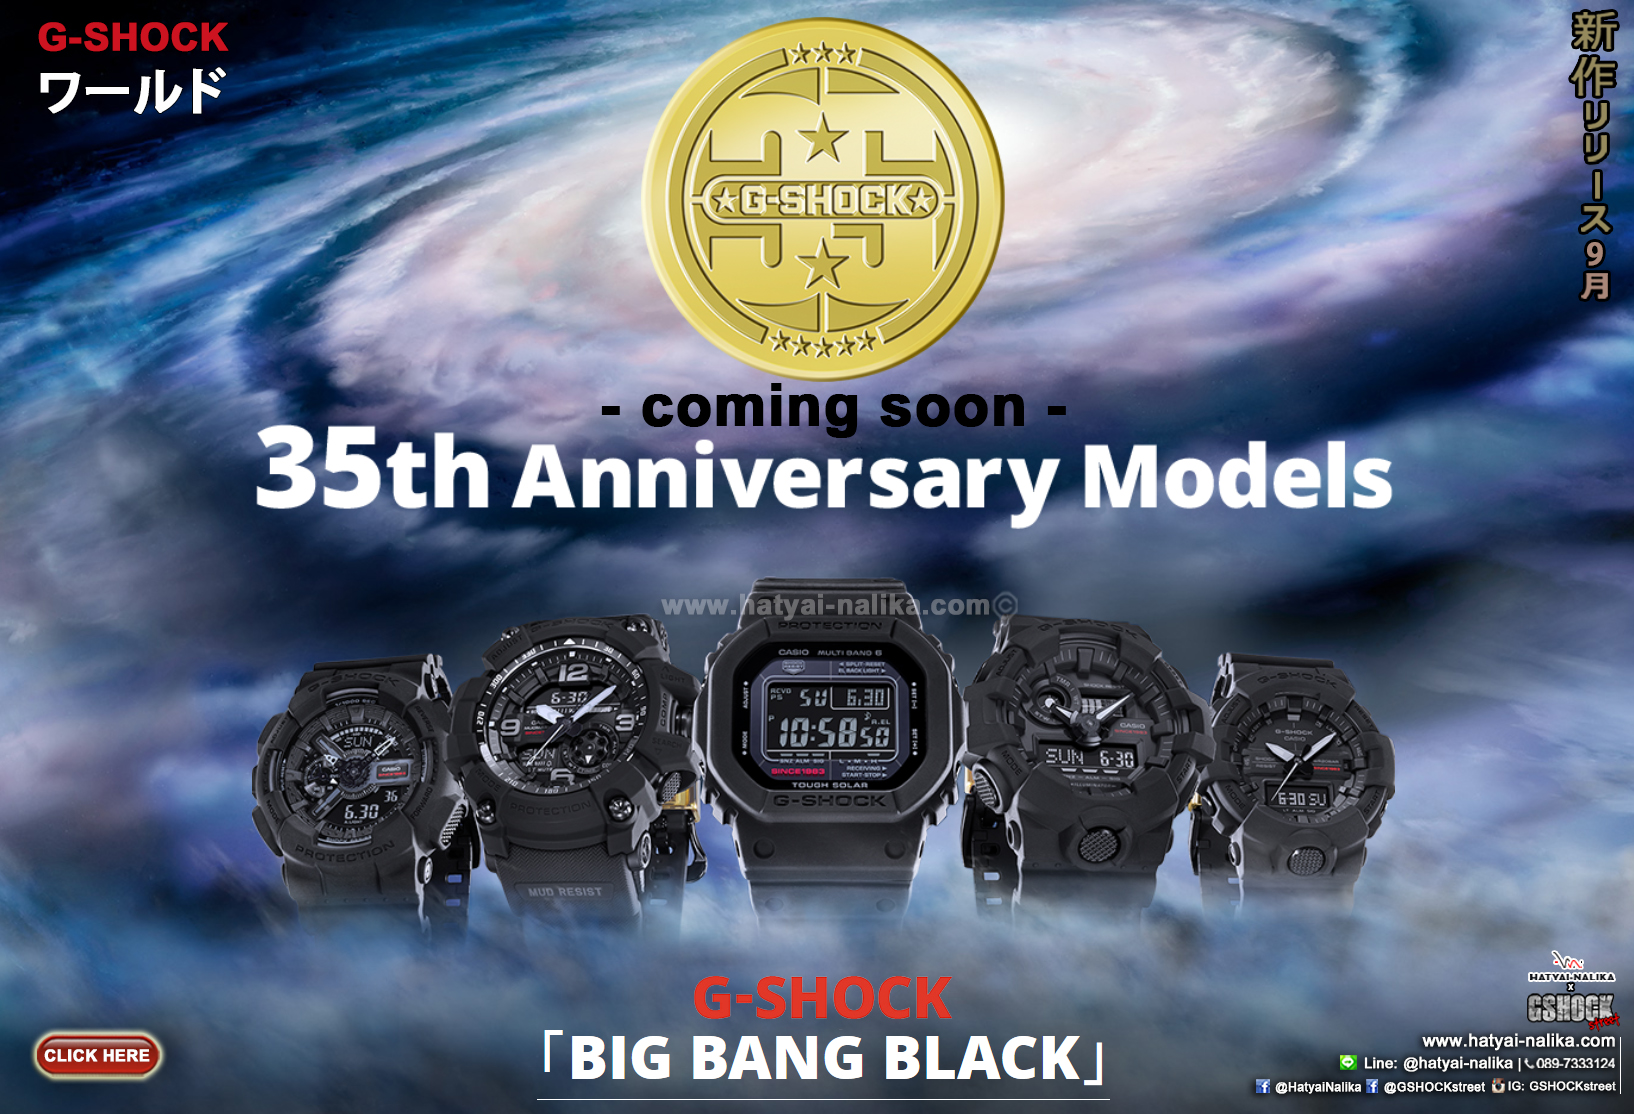 GA-135A-1A_GA-735A-1A_GA-835A-1A_GG-1035A-1A_GW-5035A-1_G-Shock BIG BANG BLACK 35th Anniversary Limited